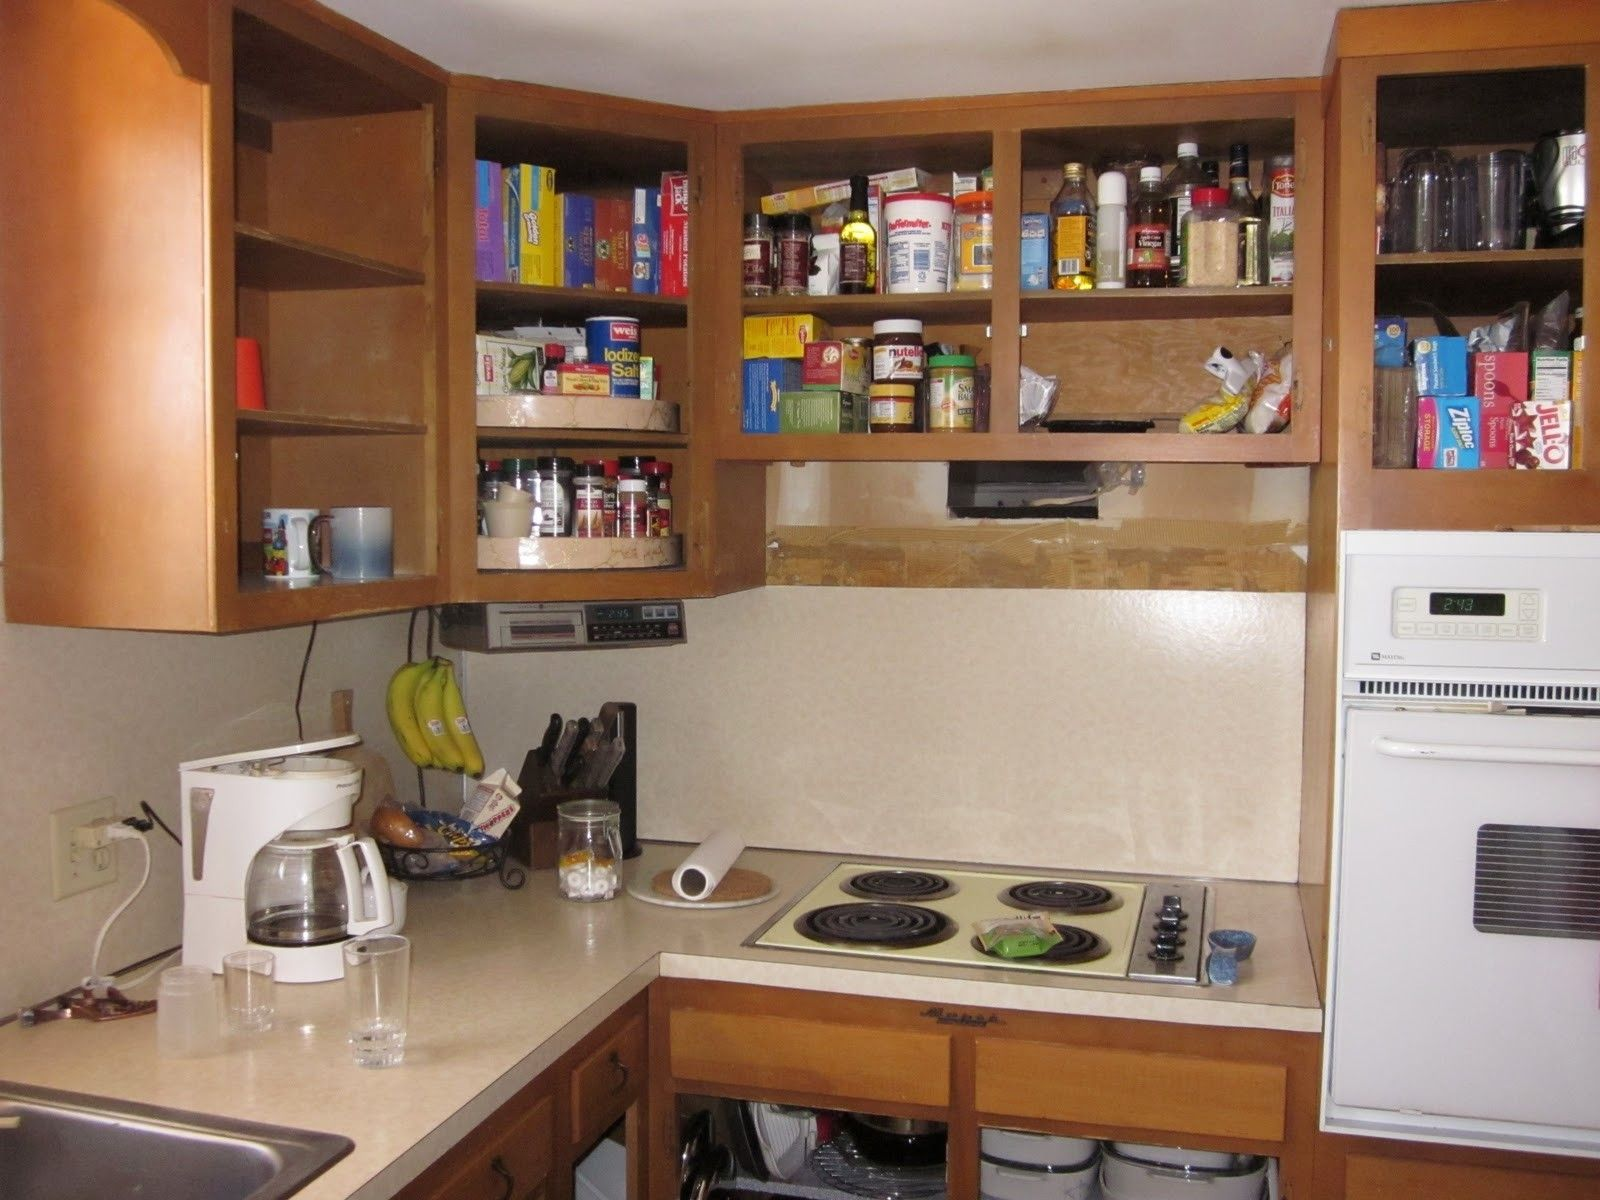 20 Cabinet Boxes Without Doors Apartment Kitchen Cabinet Ideas